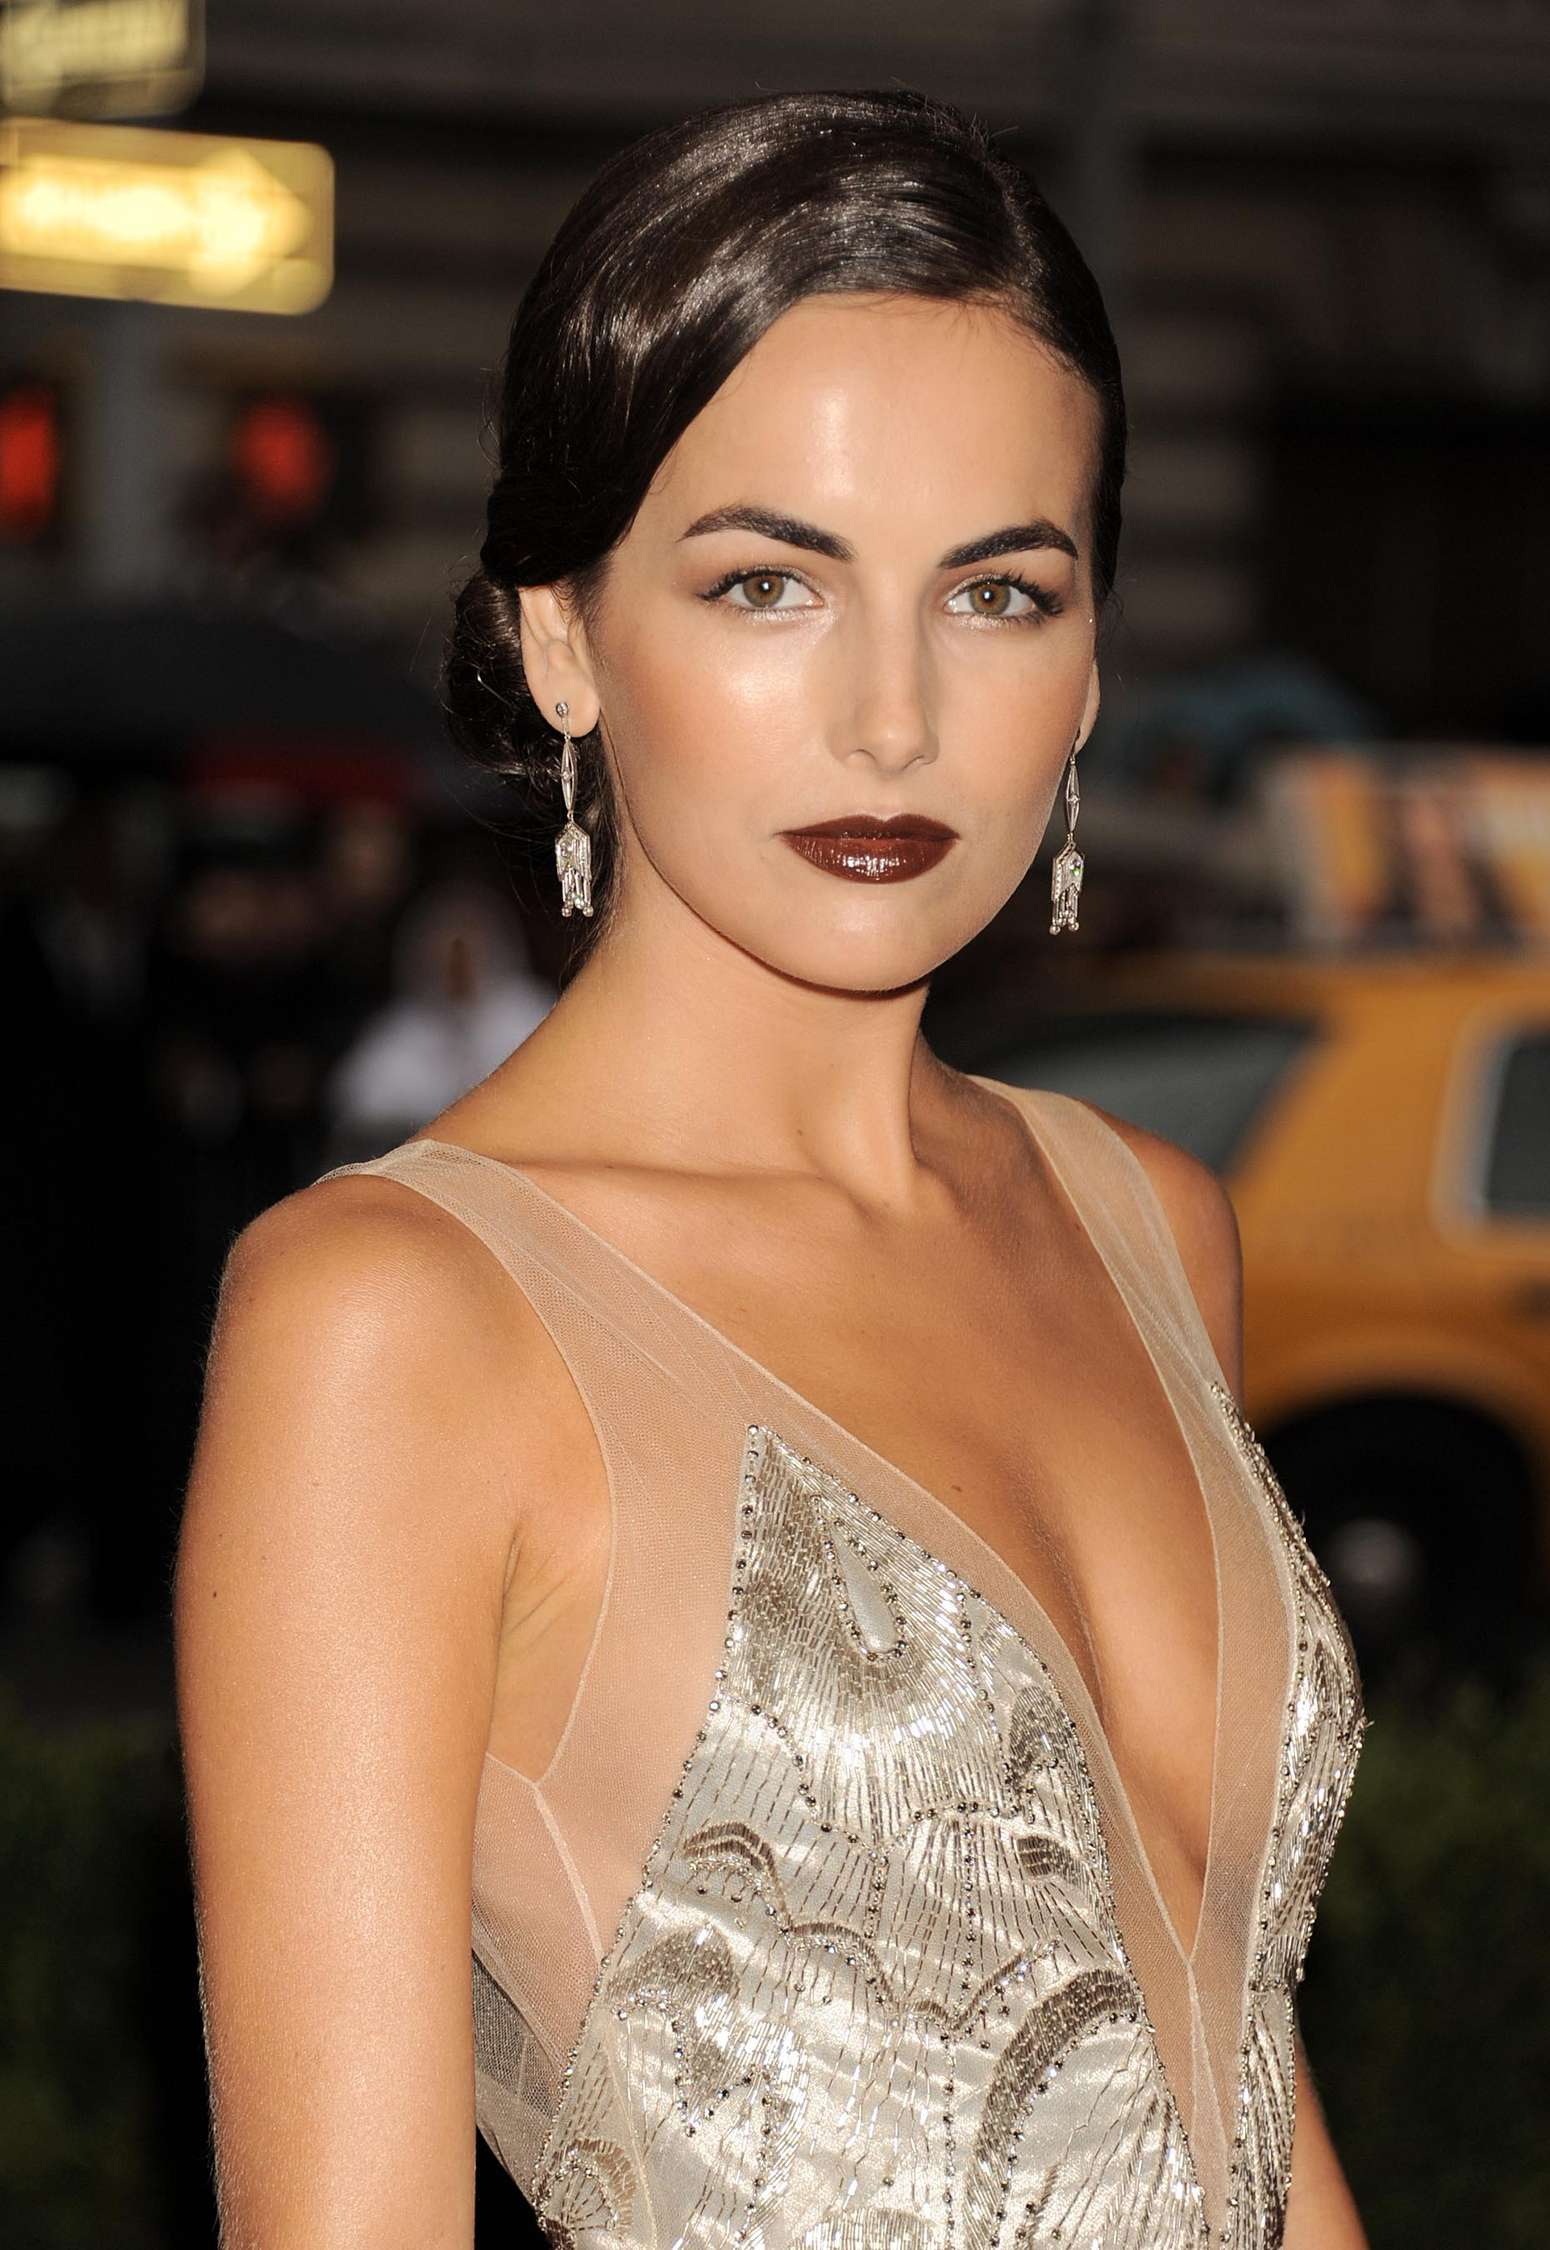 Hot Camilla Belle nude photos 2019